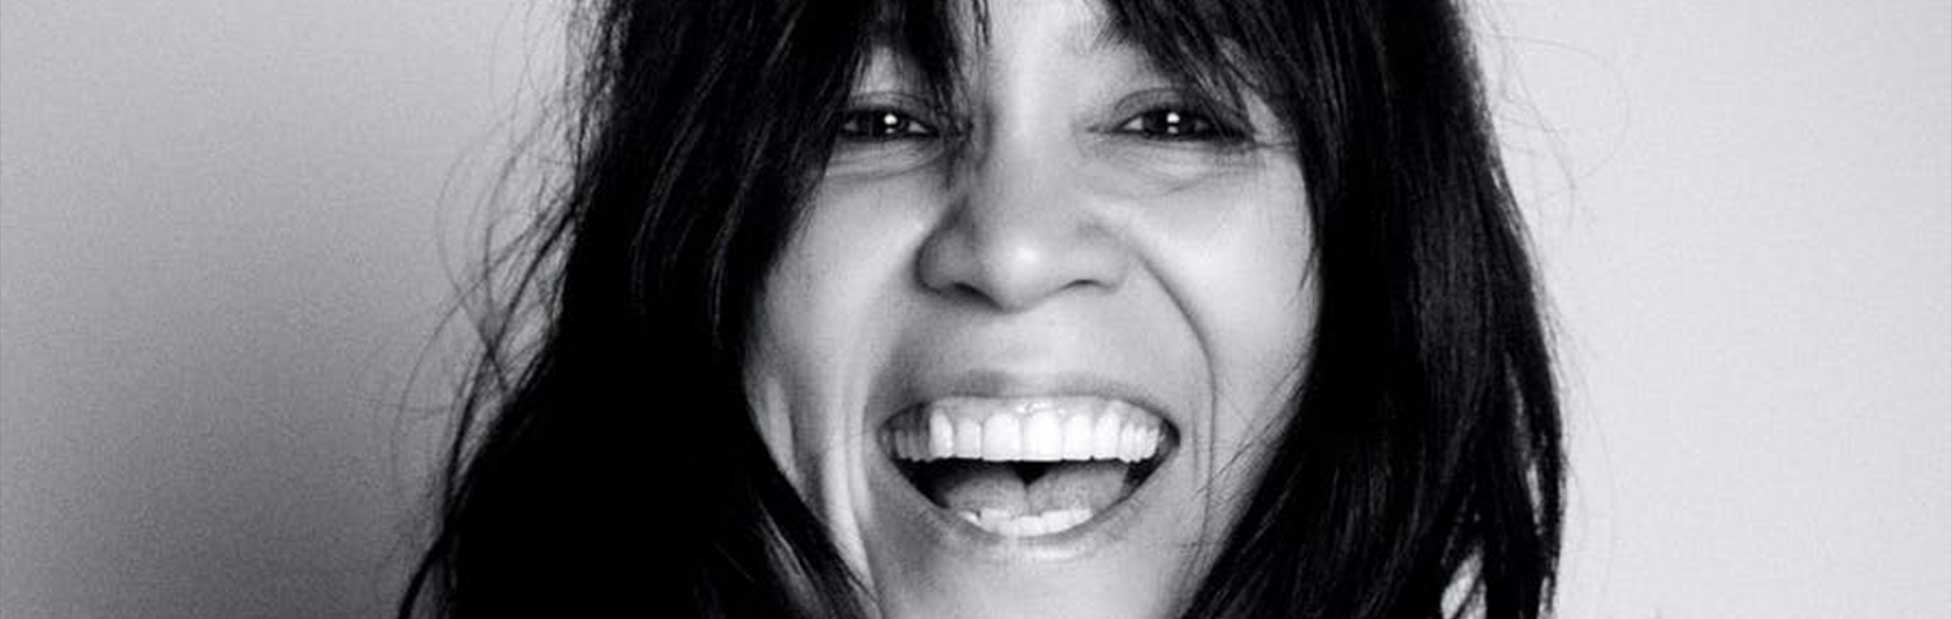 Close up black and white image of Kate Ceberano laughing